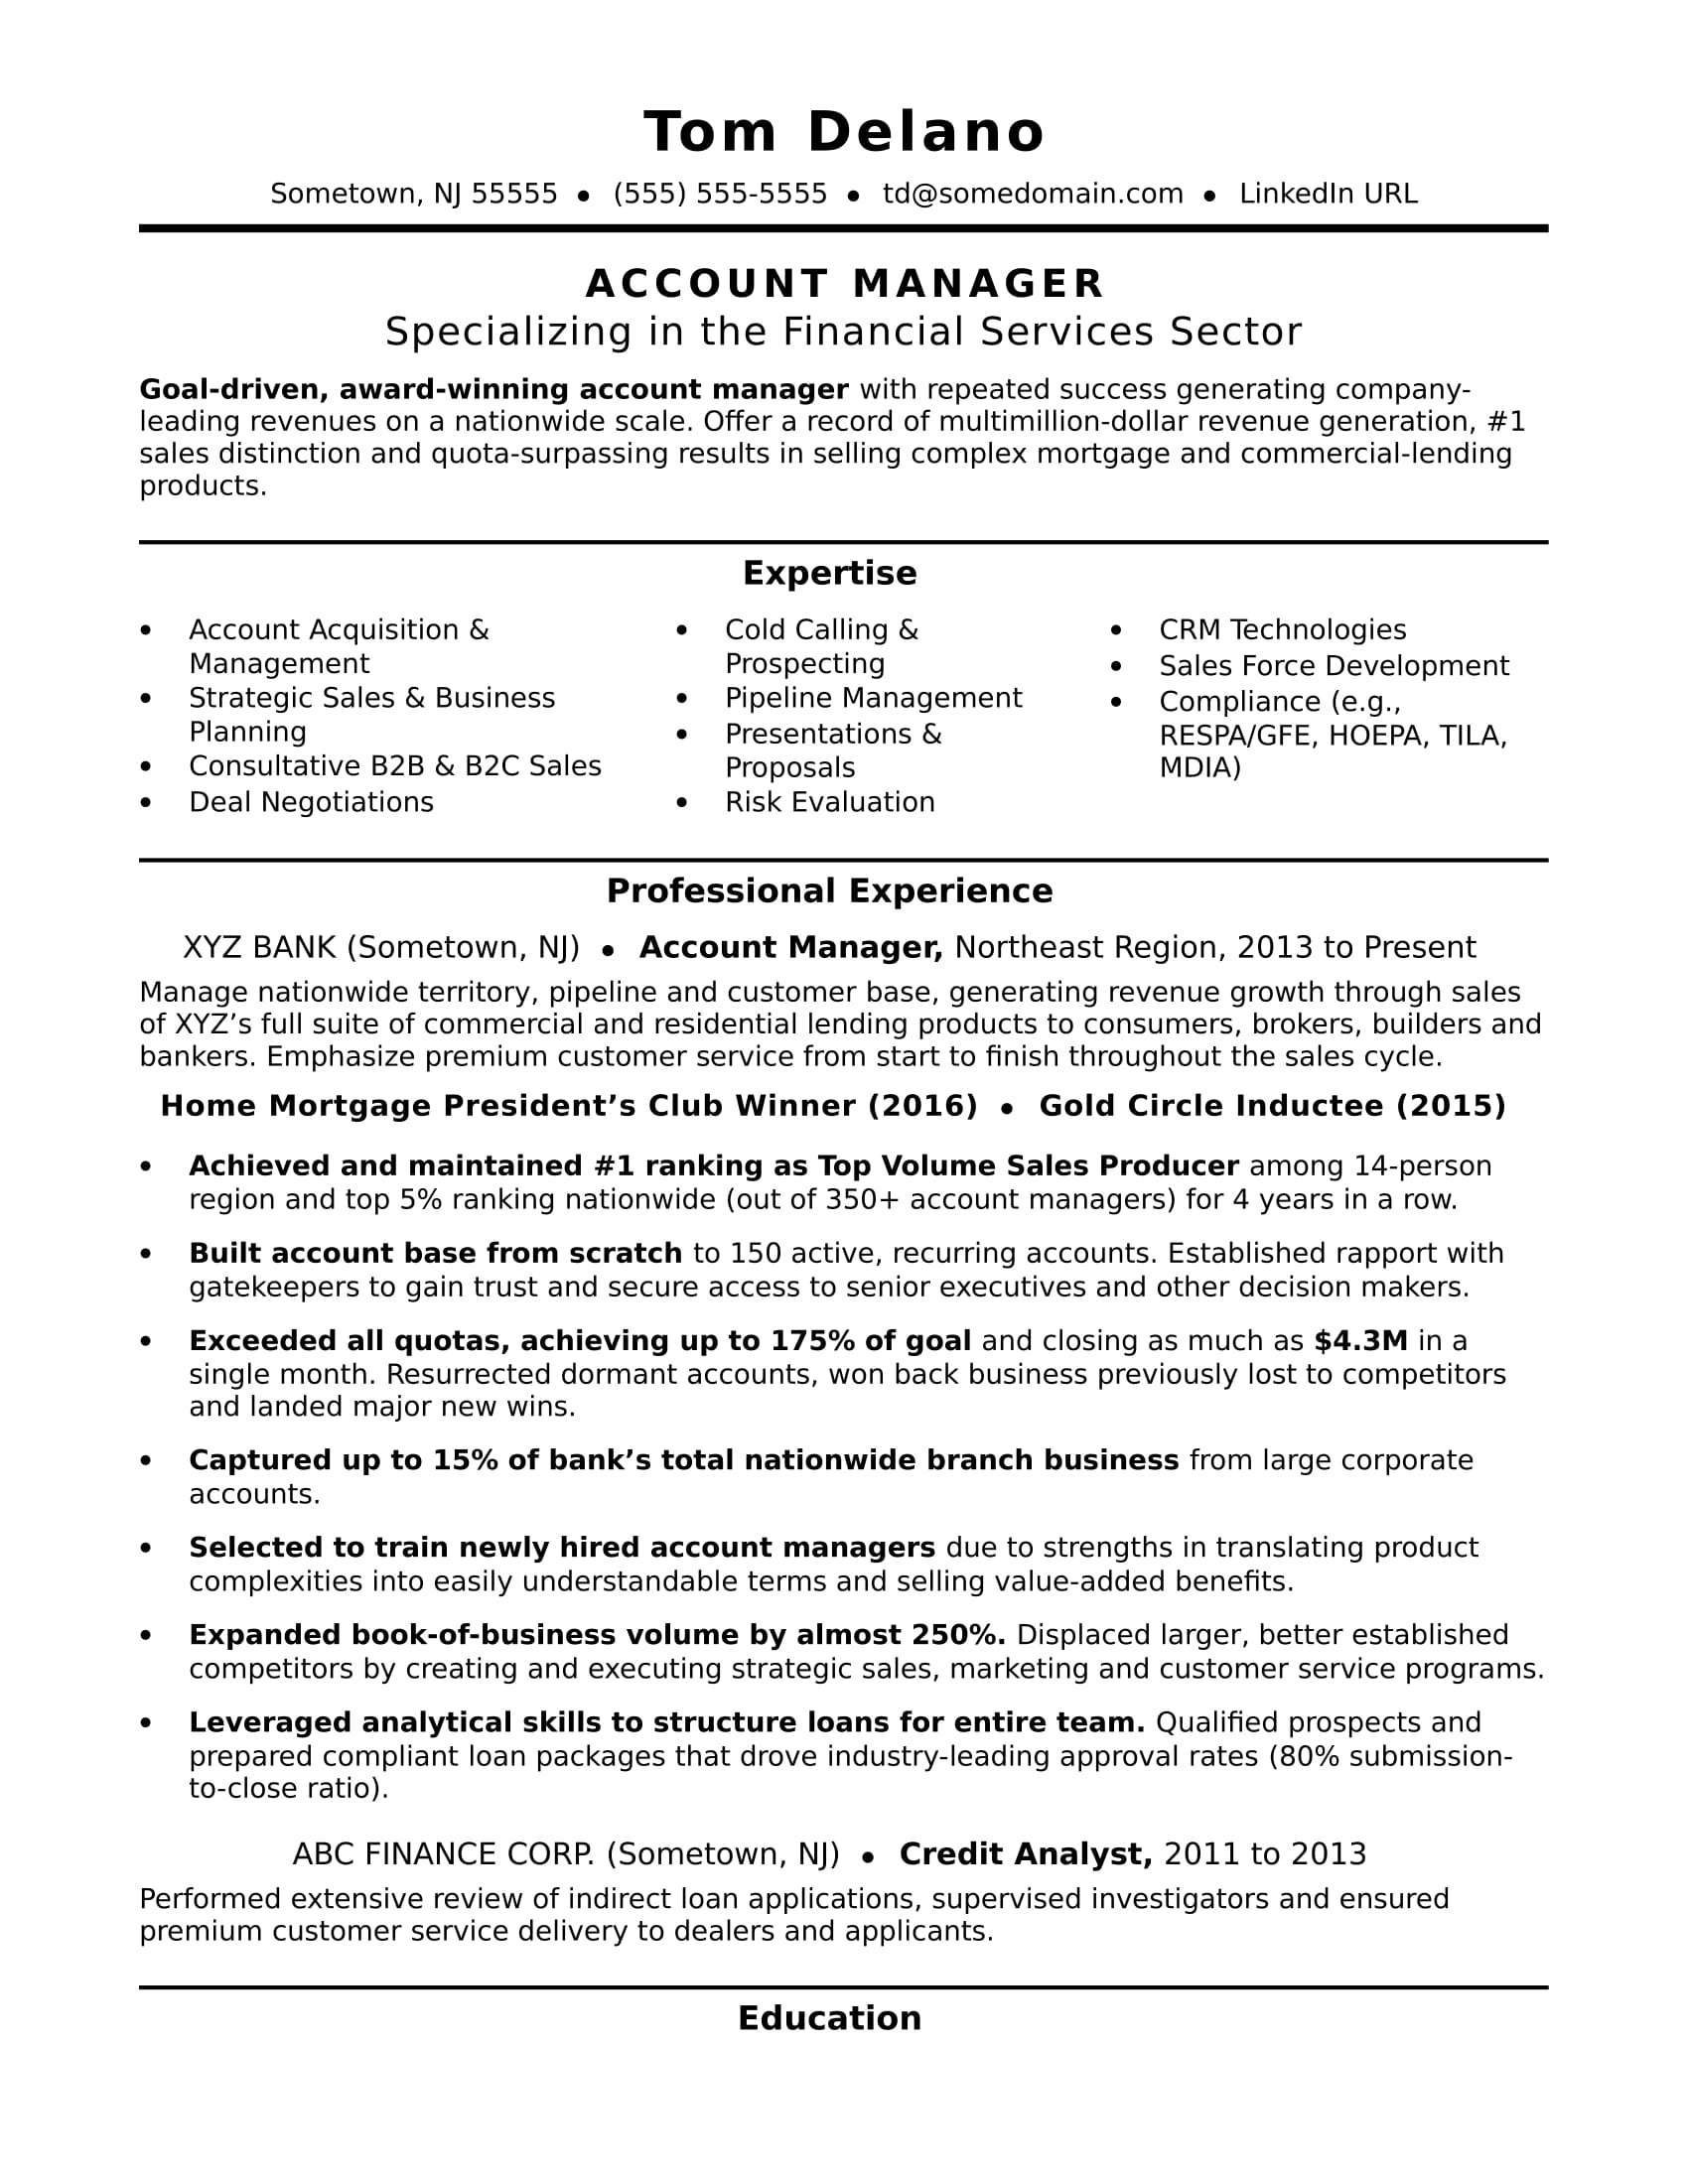 account manager resume sample monster accounting coordinator senior software engineer Resume Accounting Coordinator Resume Sample